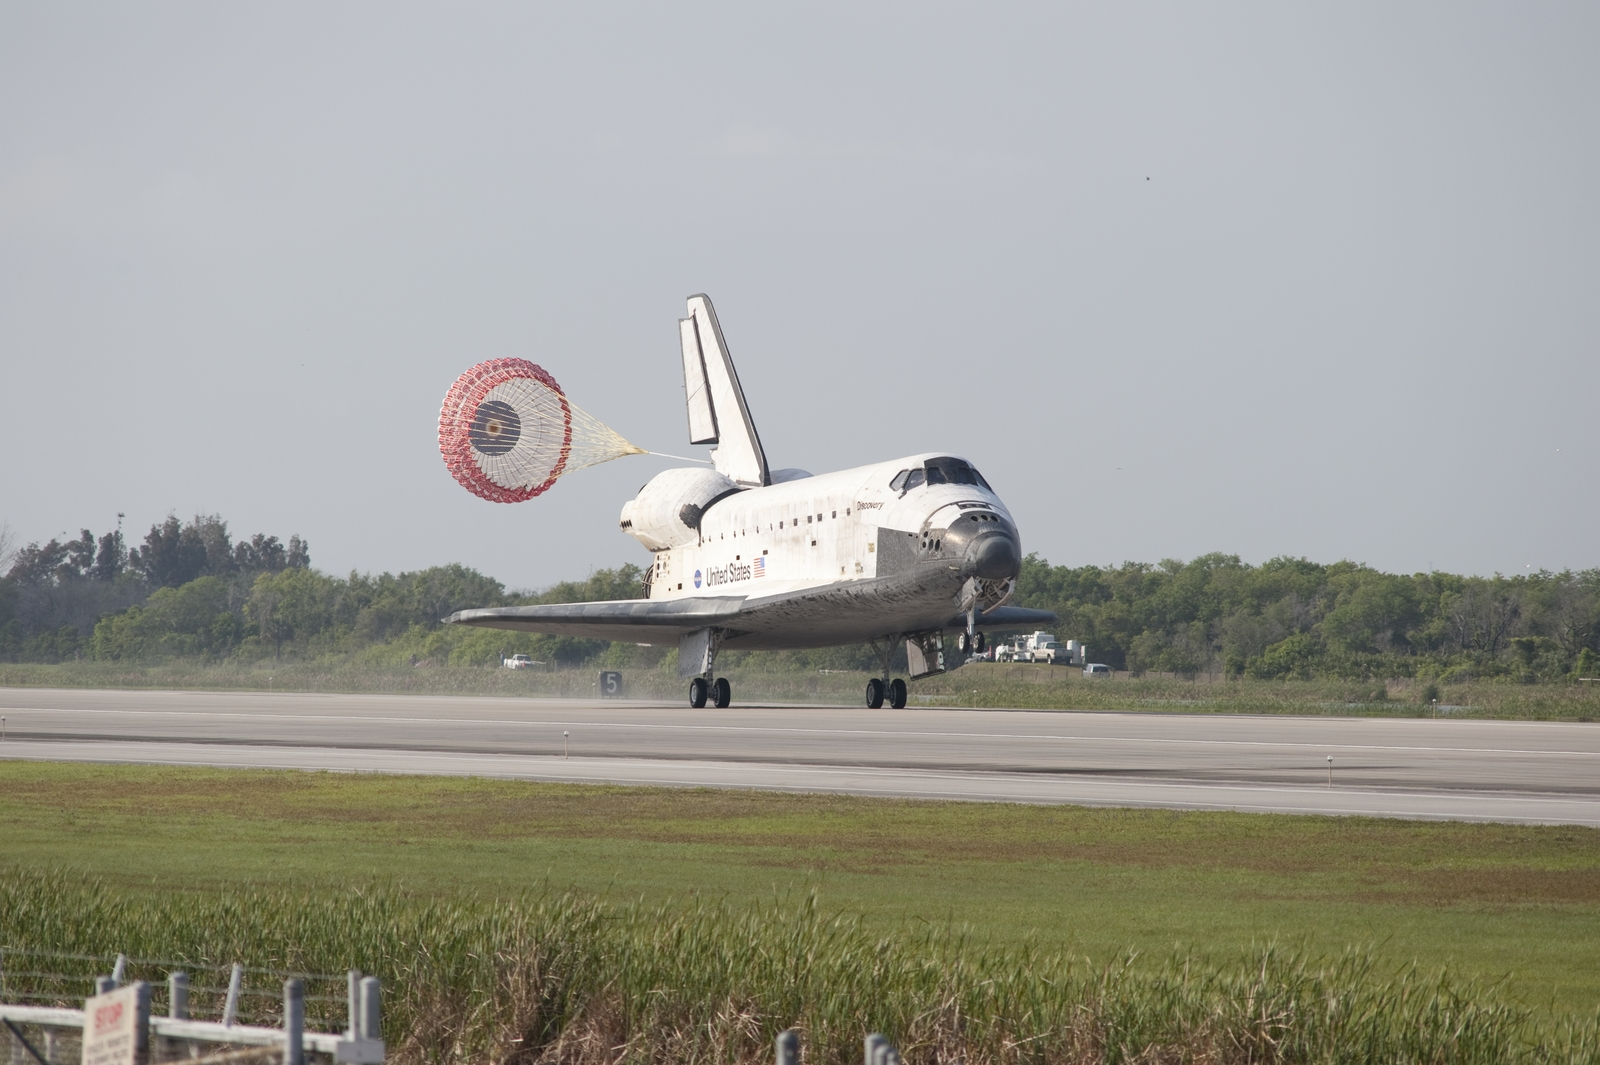 STS-131 - EOM